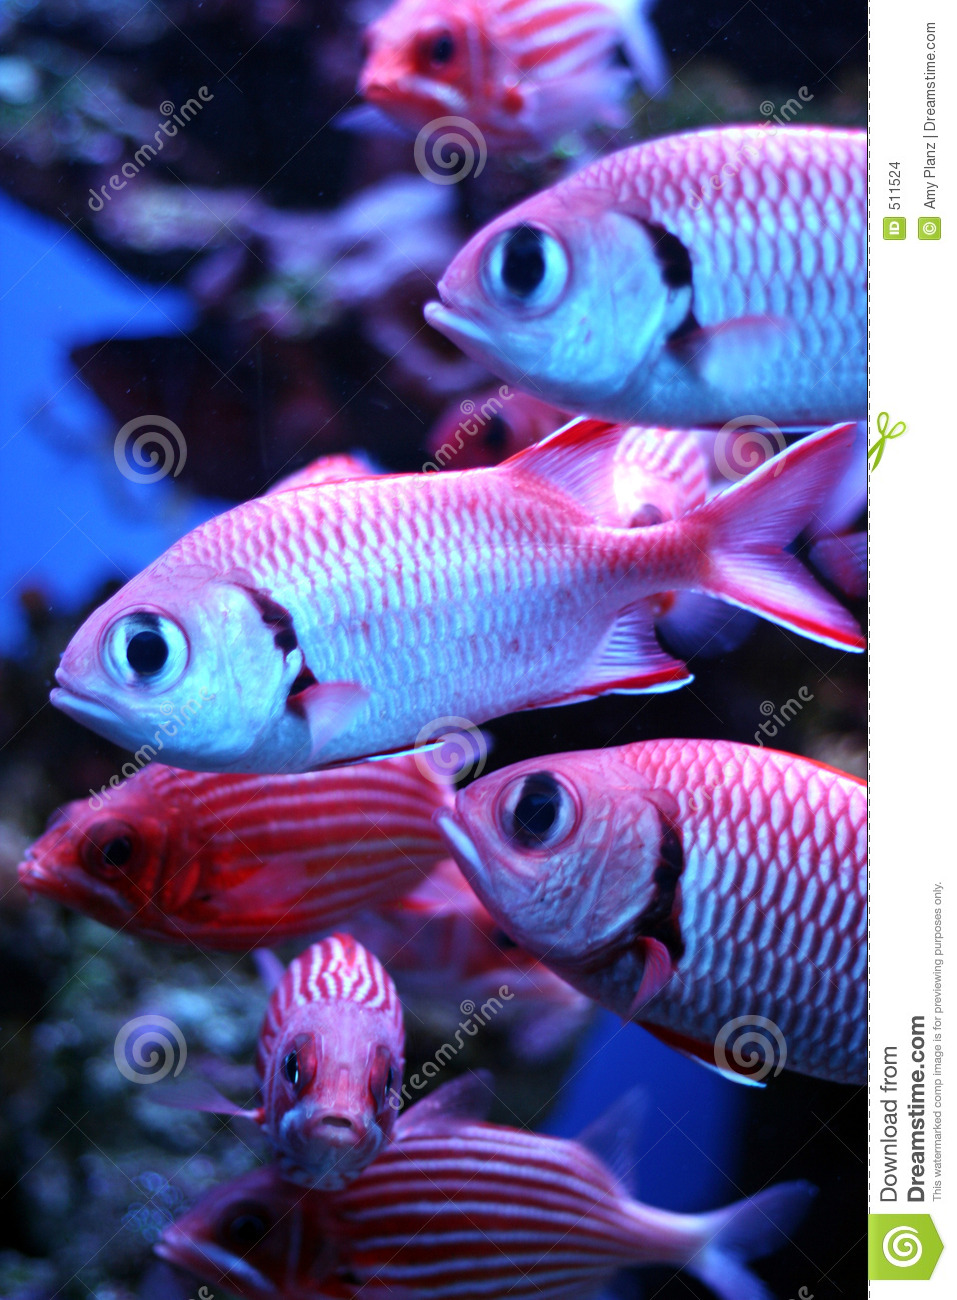 Tropical fish stock photo image of neon dark bright for 405 tropical fish